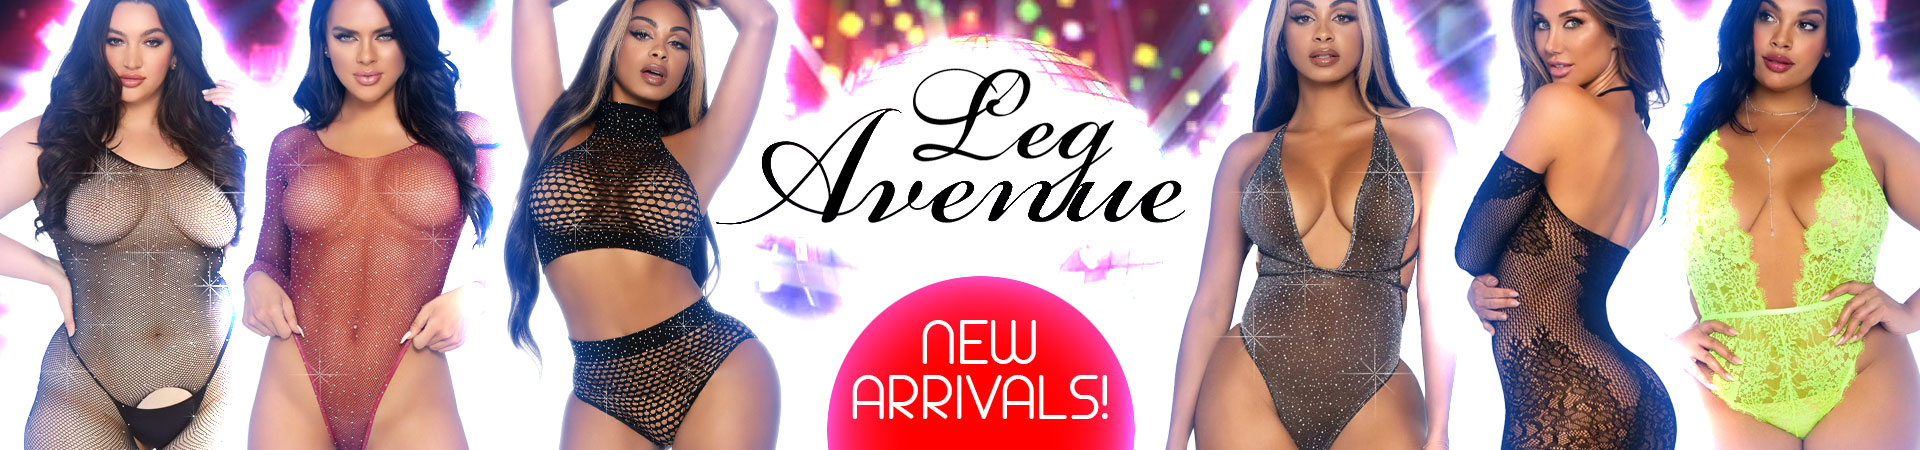 New From Leg Avenue!